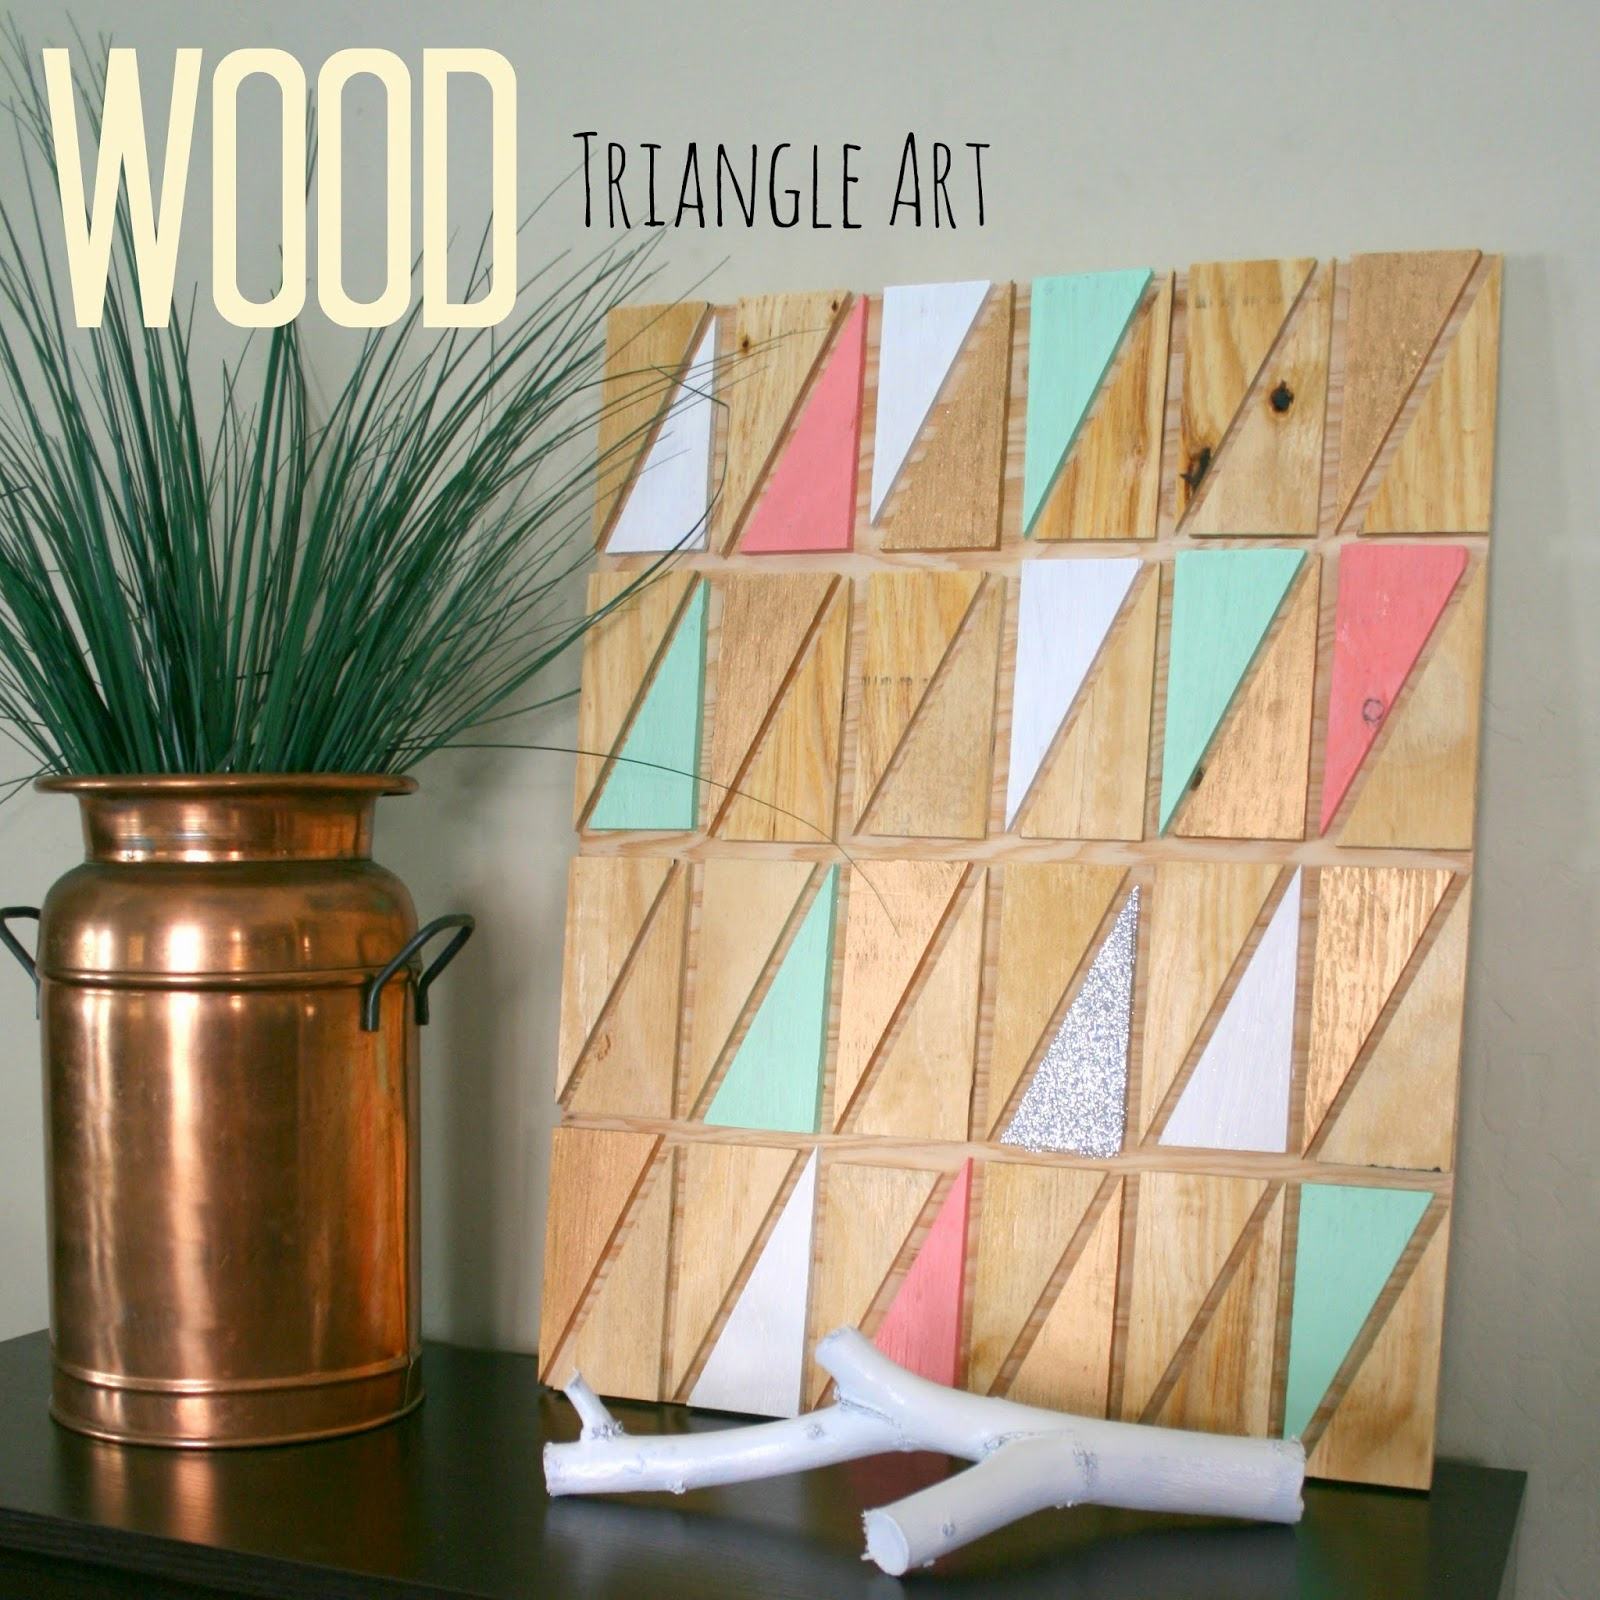 Geometric Wall Art pneumatic addict : easy geometric wall art